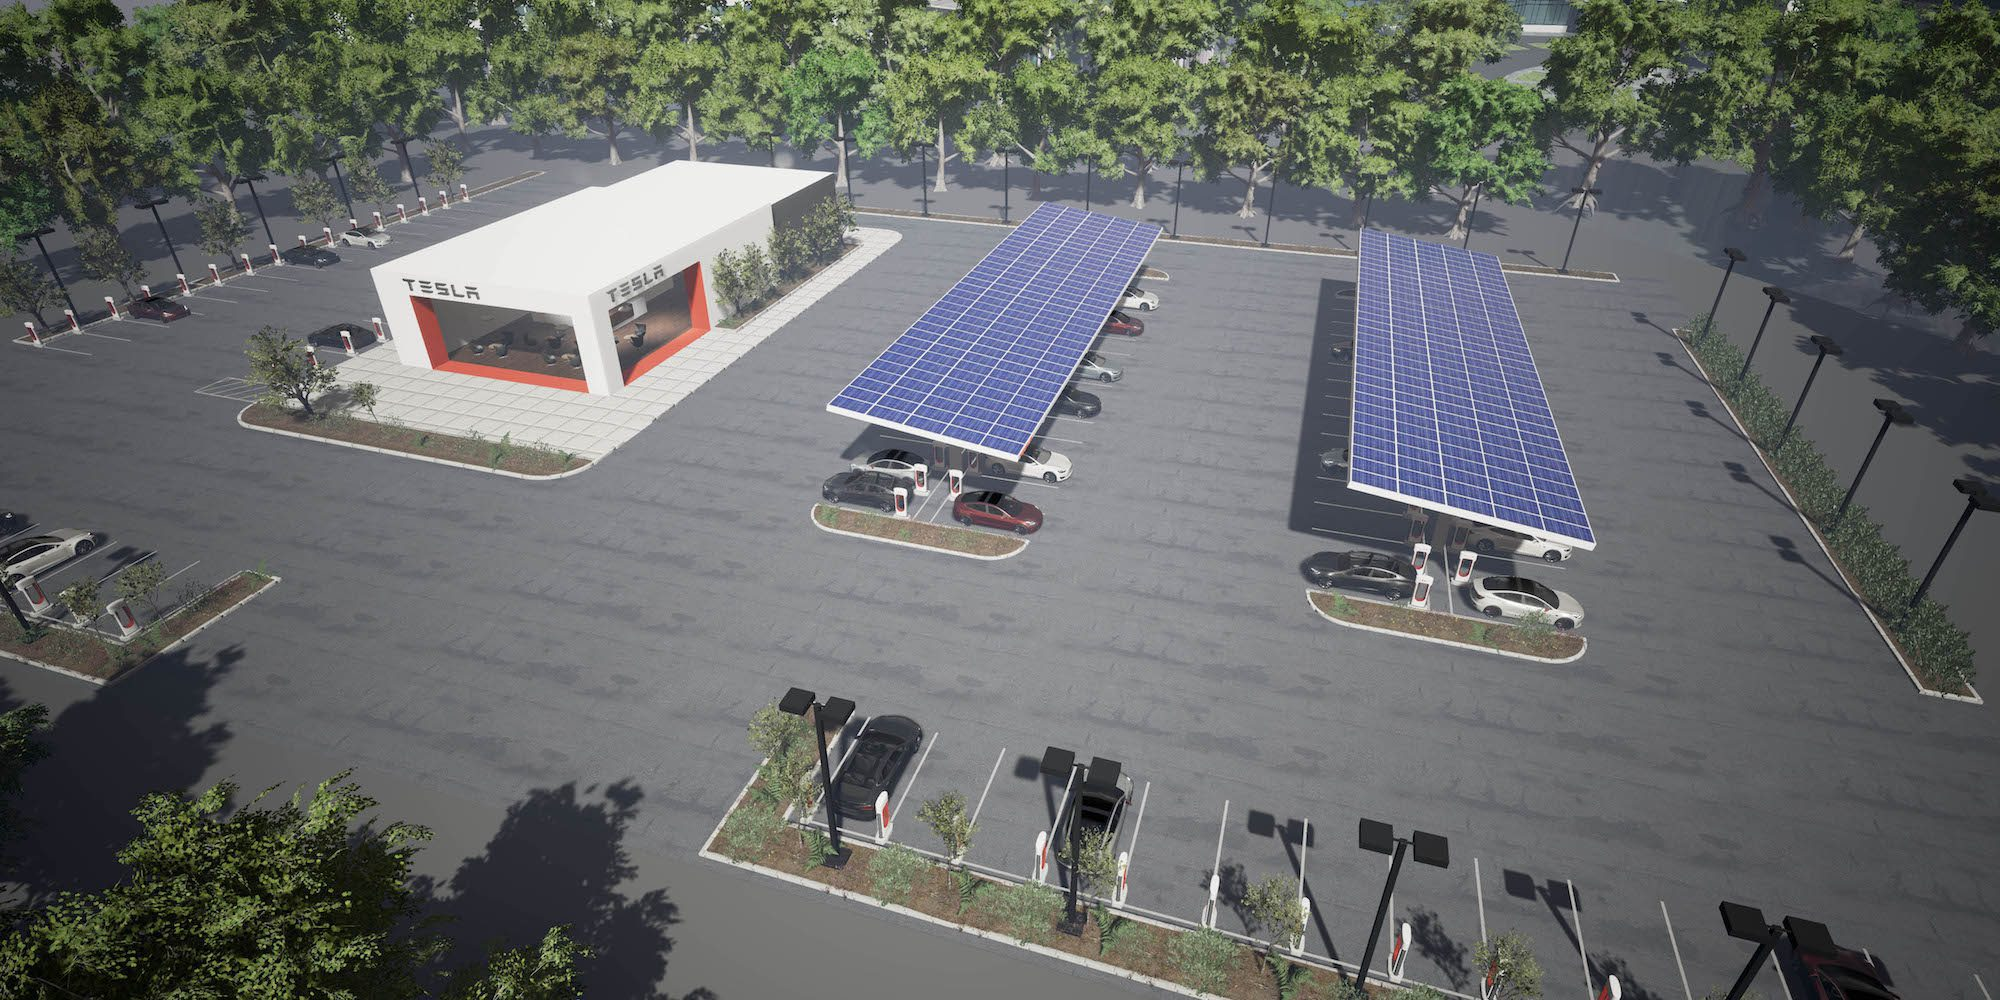 Tesla Supercharger Expansion >> Tesla's new drive-in restaurant with Supercharger station gets a possible location as company ...